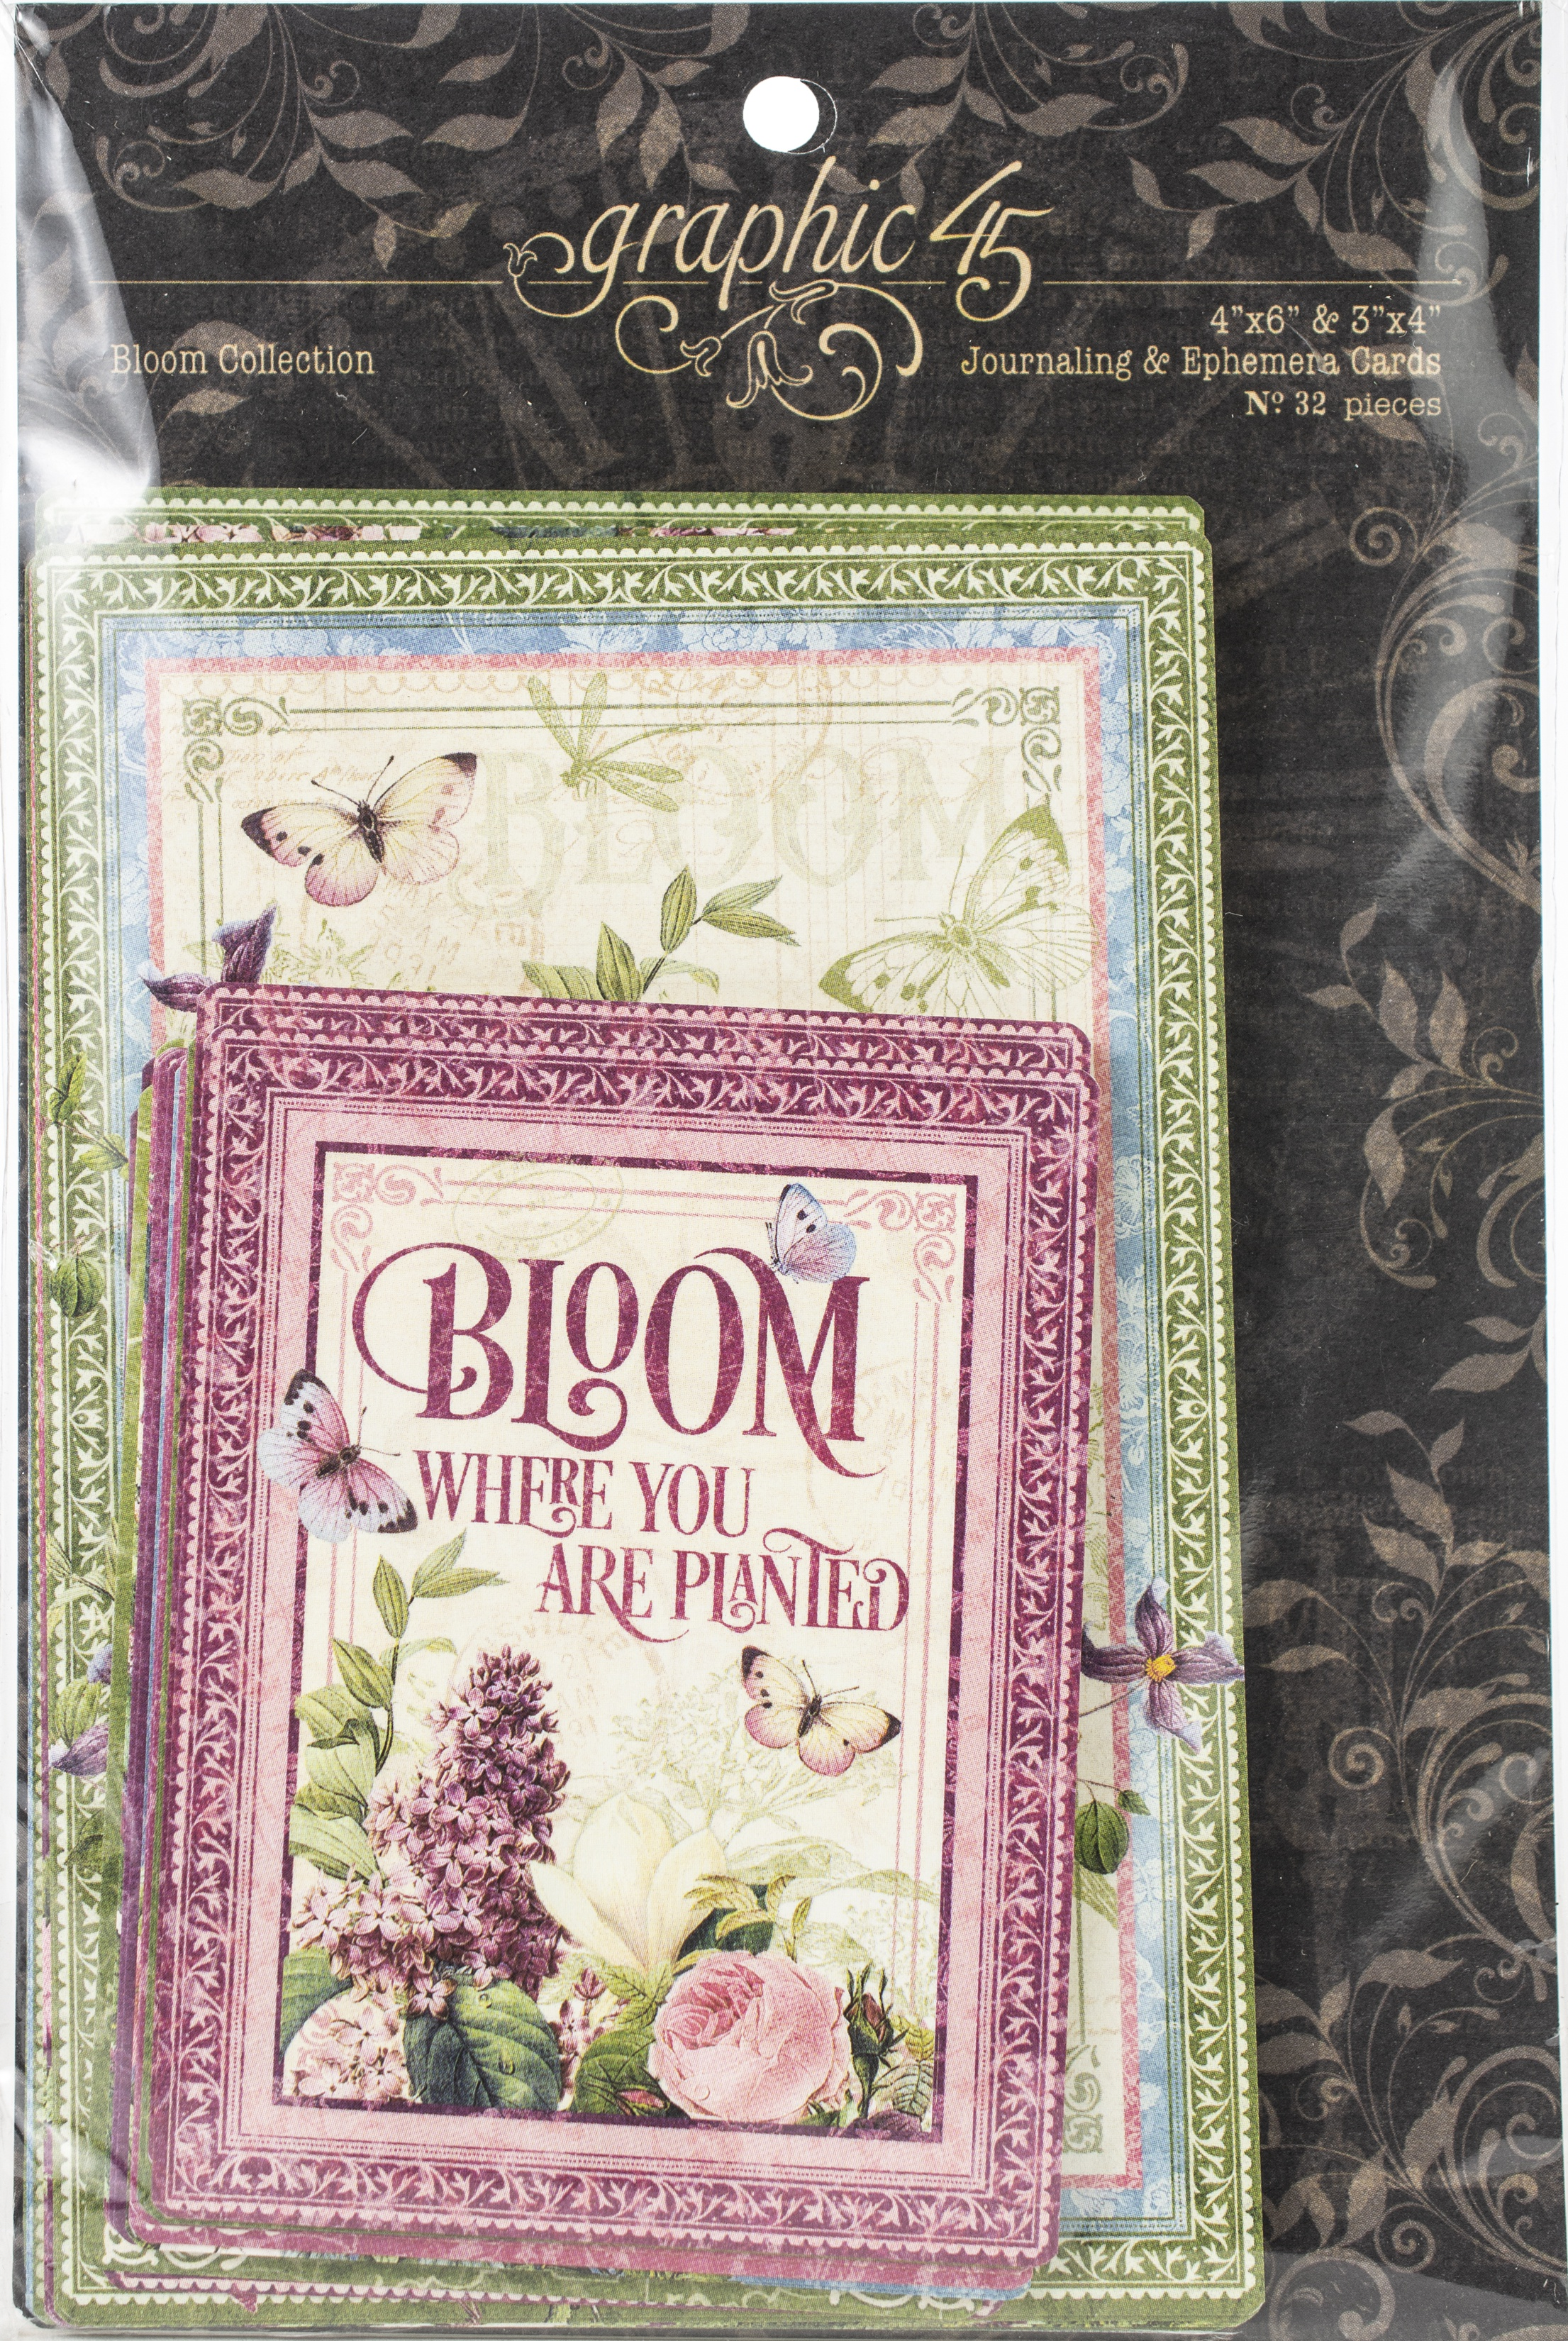 Graphic 45 - Bloom - Journalling & Ephemera Cards